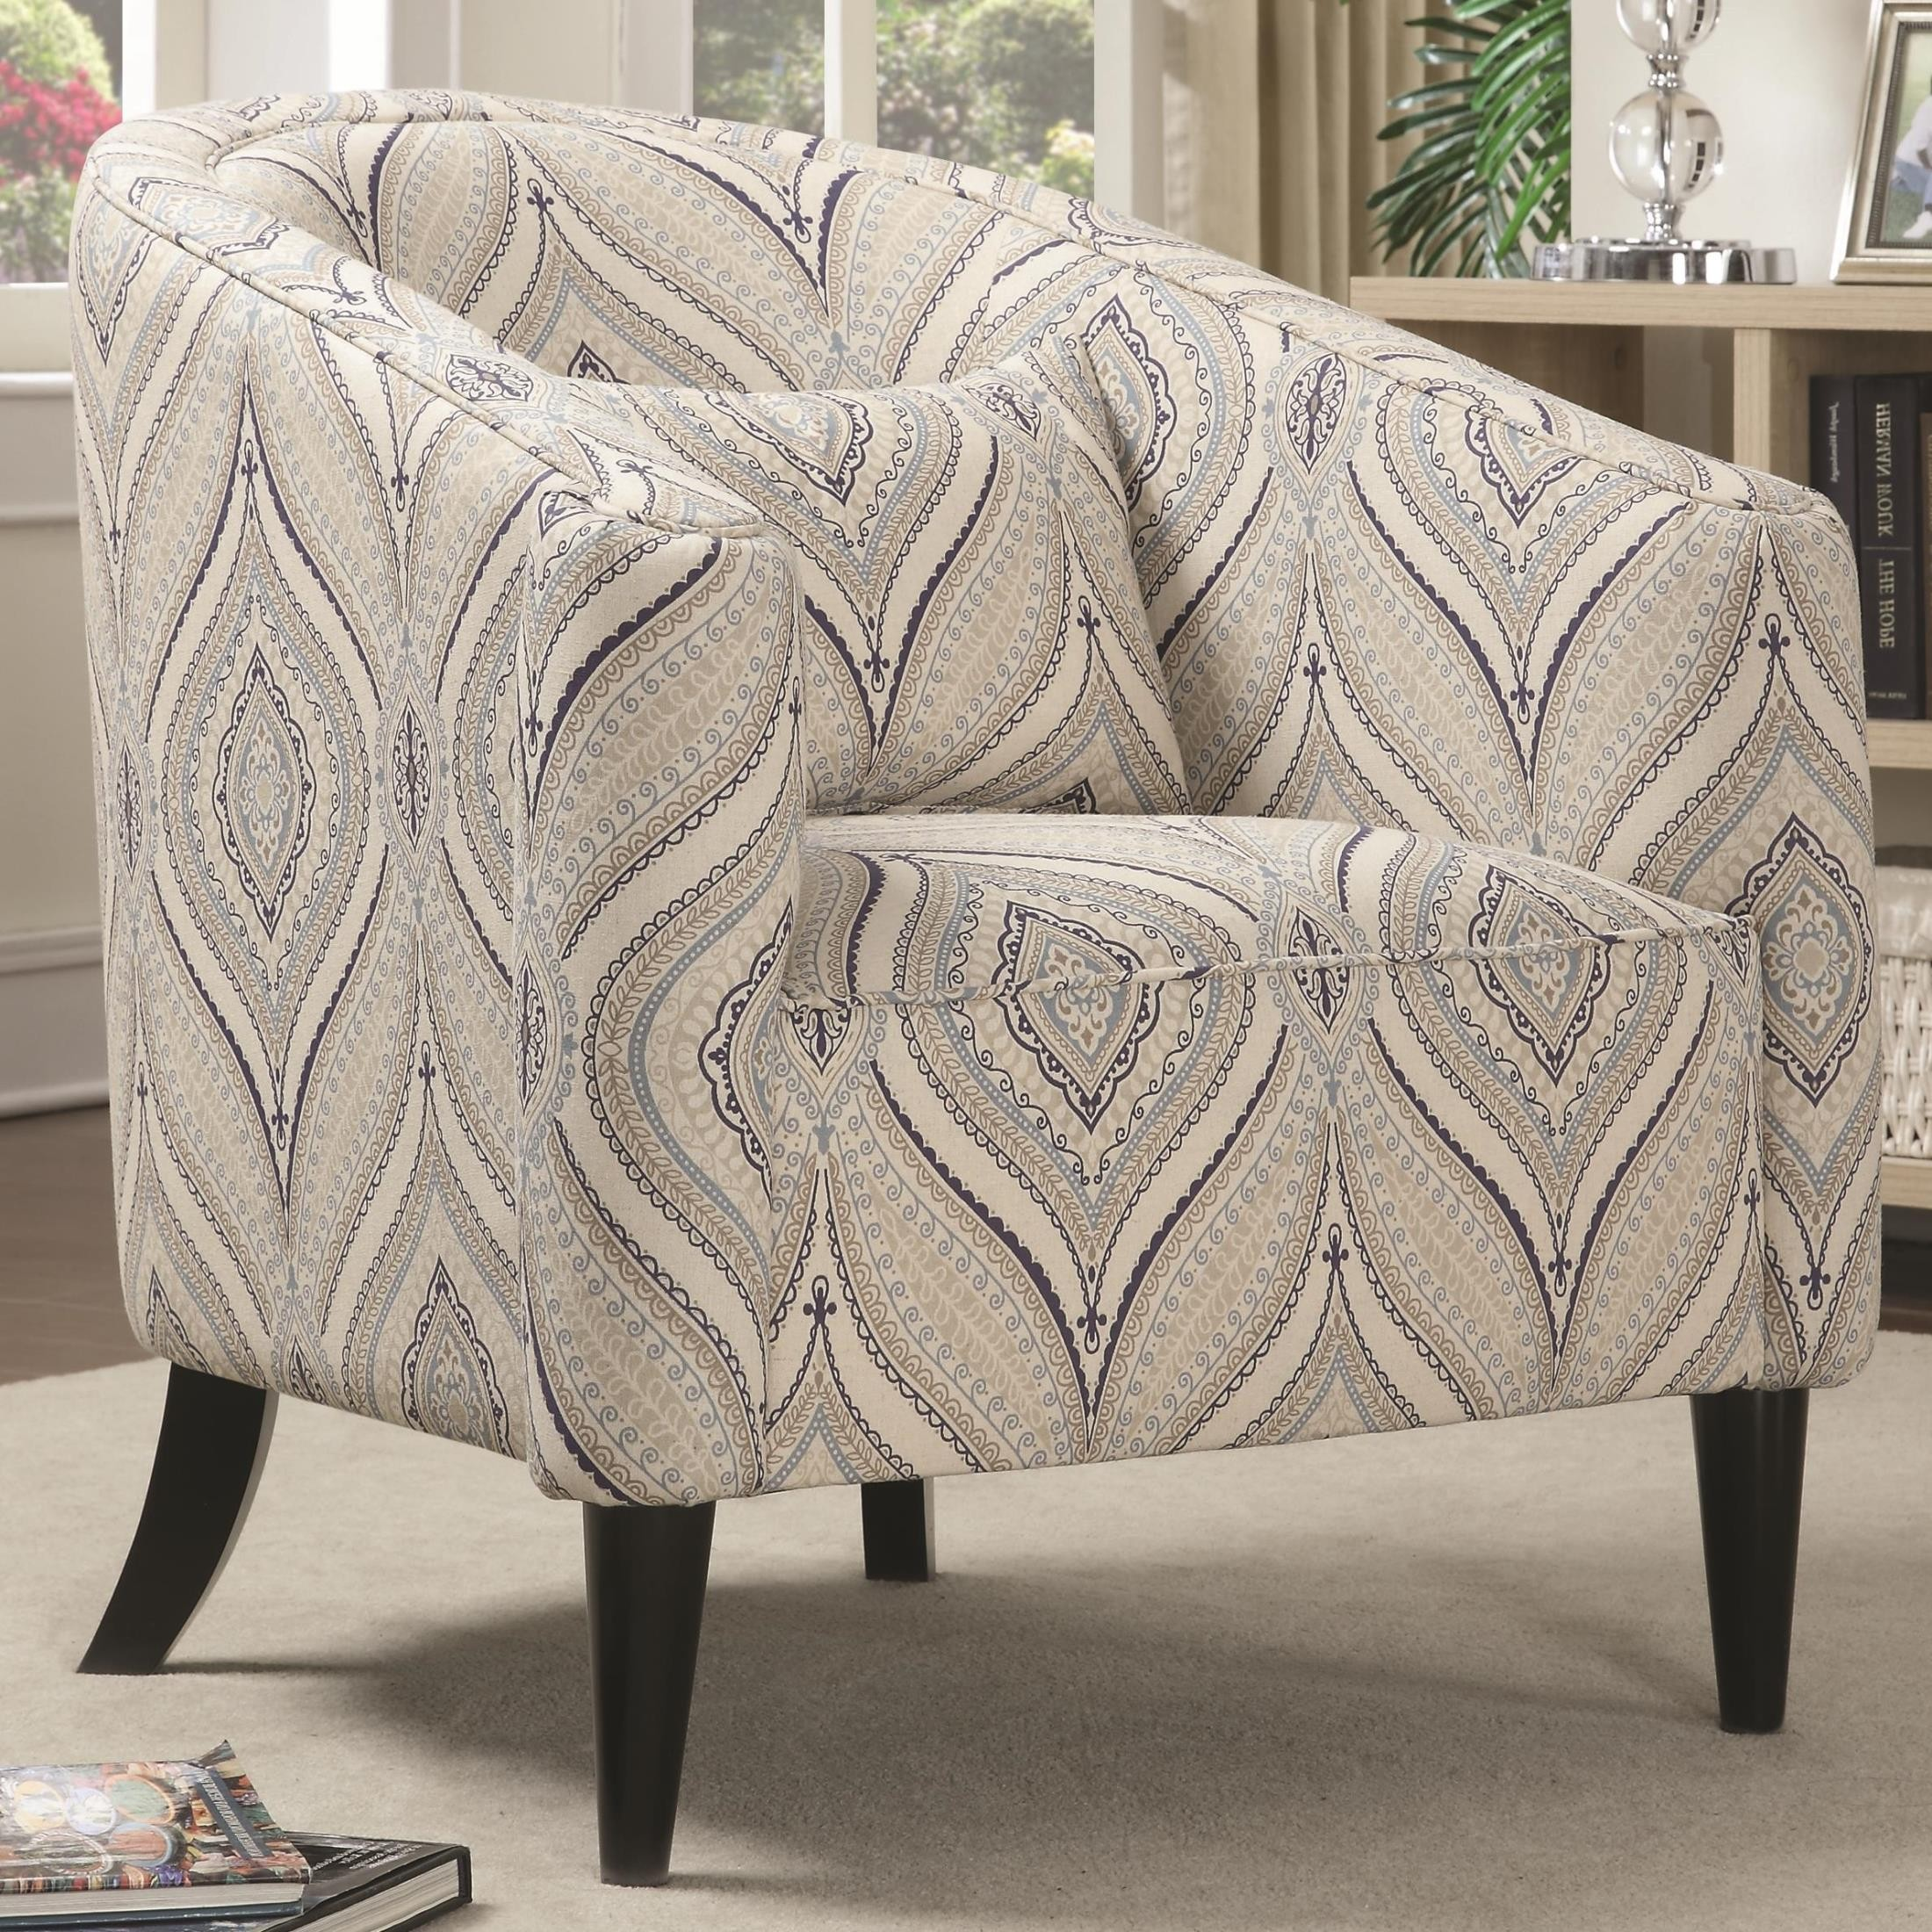 Multi Colored Accent Chairs Claxton Multi Color Printed Linen Accent Chair From